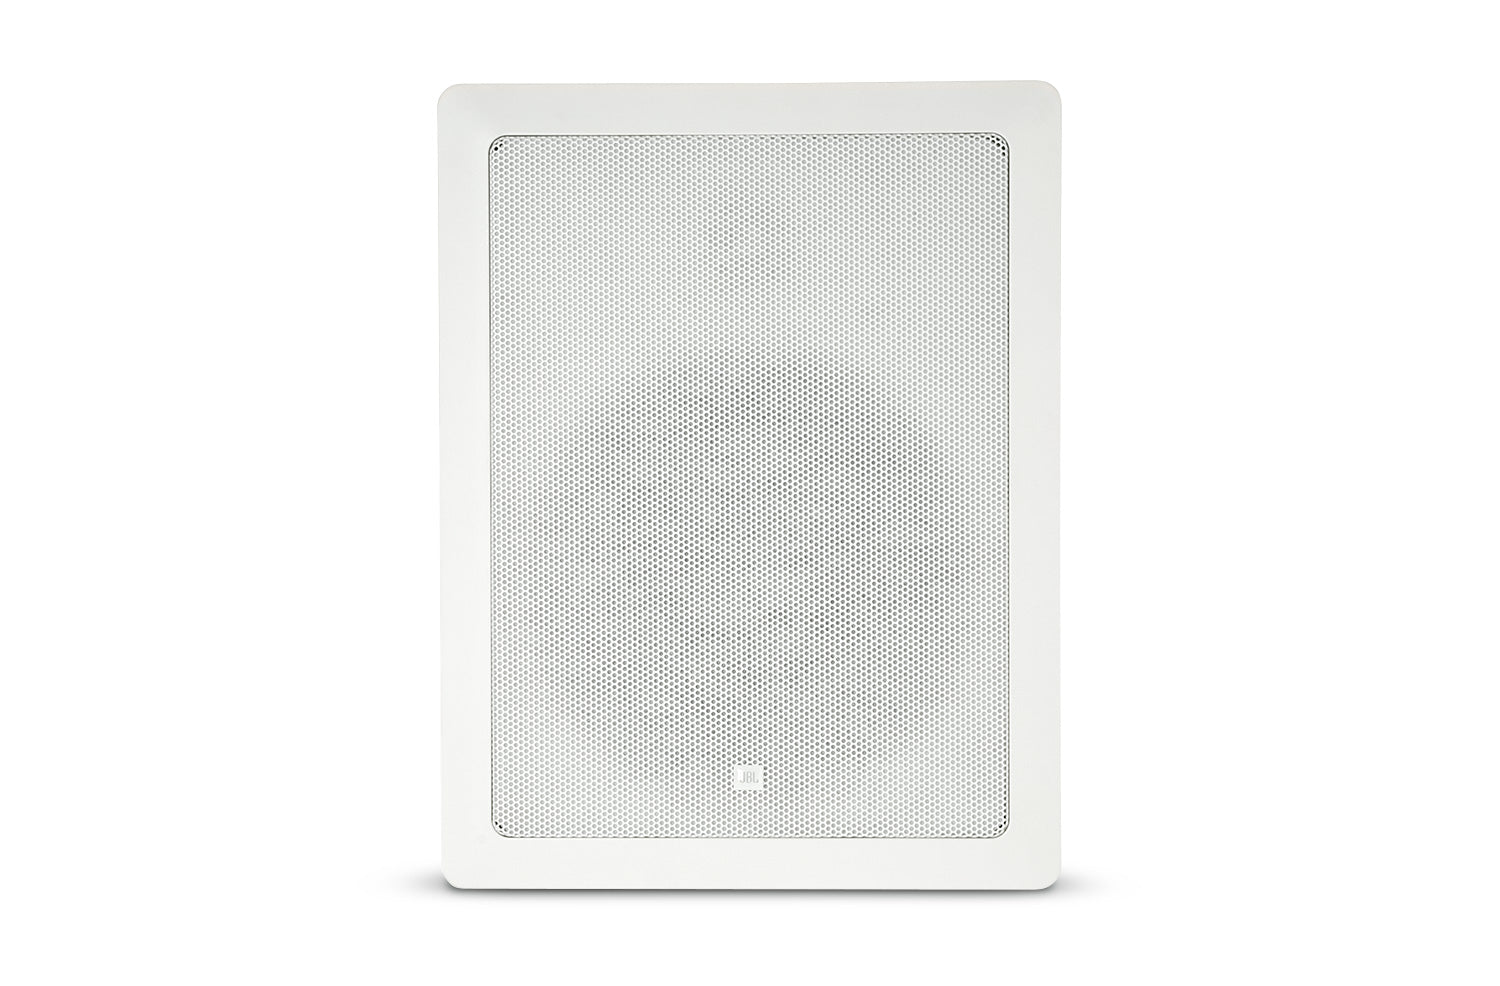 JBL Professional Control 128W Premium In-Wall Loudspeaker, Sold as Pair - 305broadcast